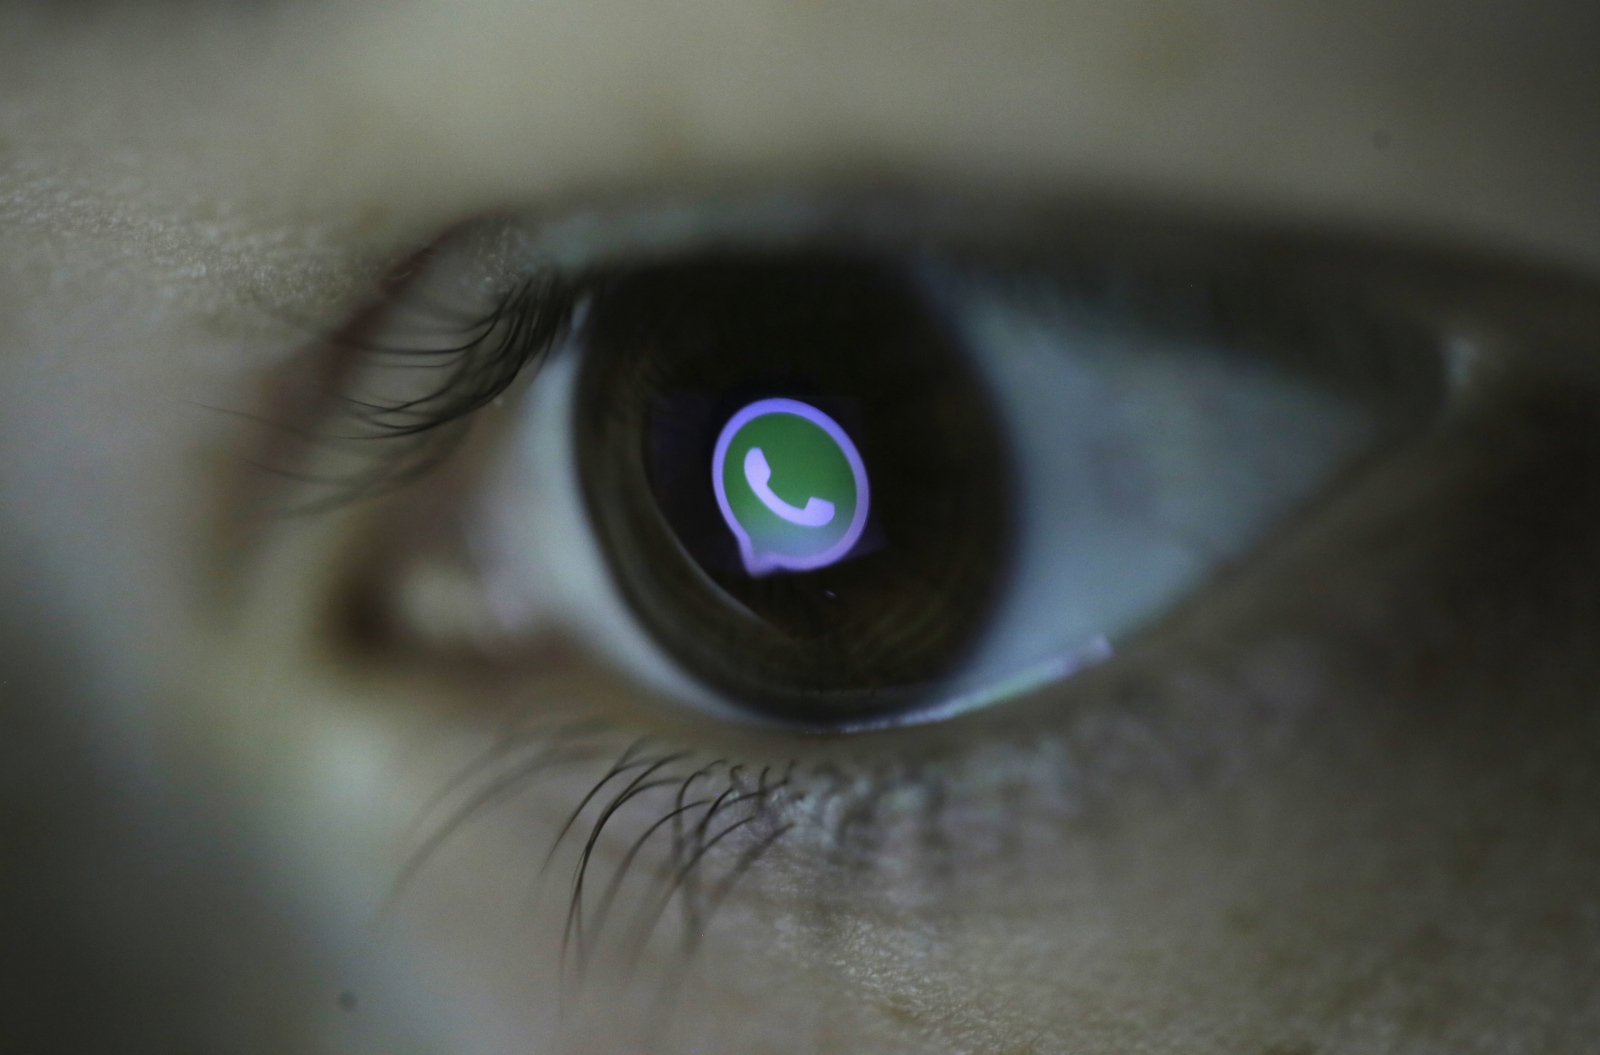 WhatsApp accused of blocking encrypted calls to Saudi Arabia by Cryptocat developer